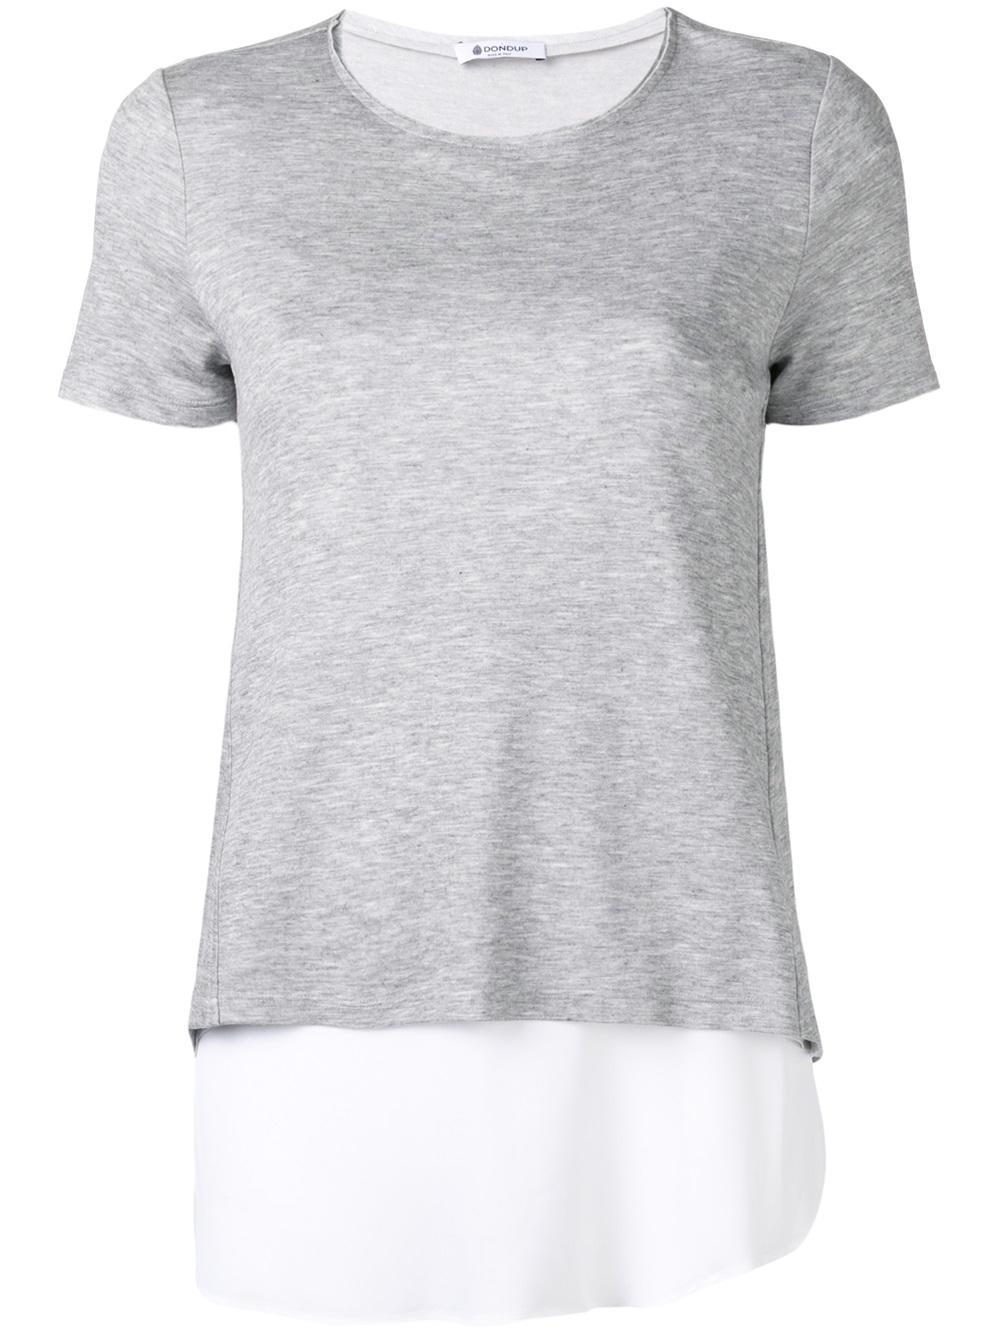 Dondup Layered T Shirt In Gray Lyst